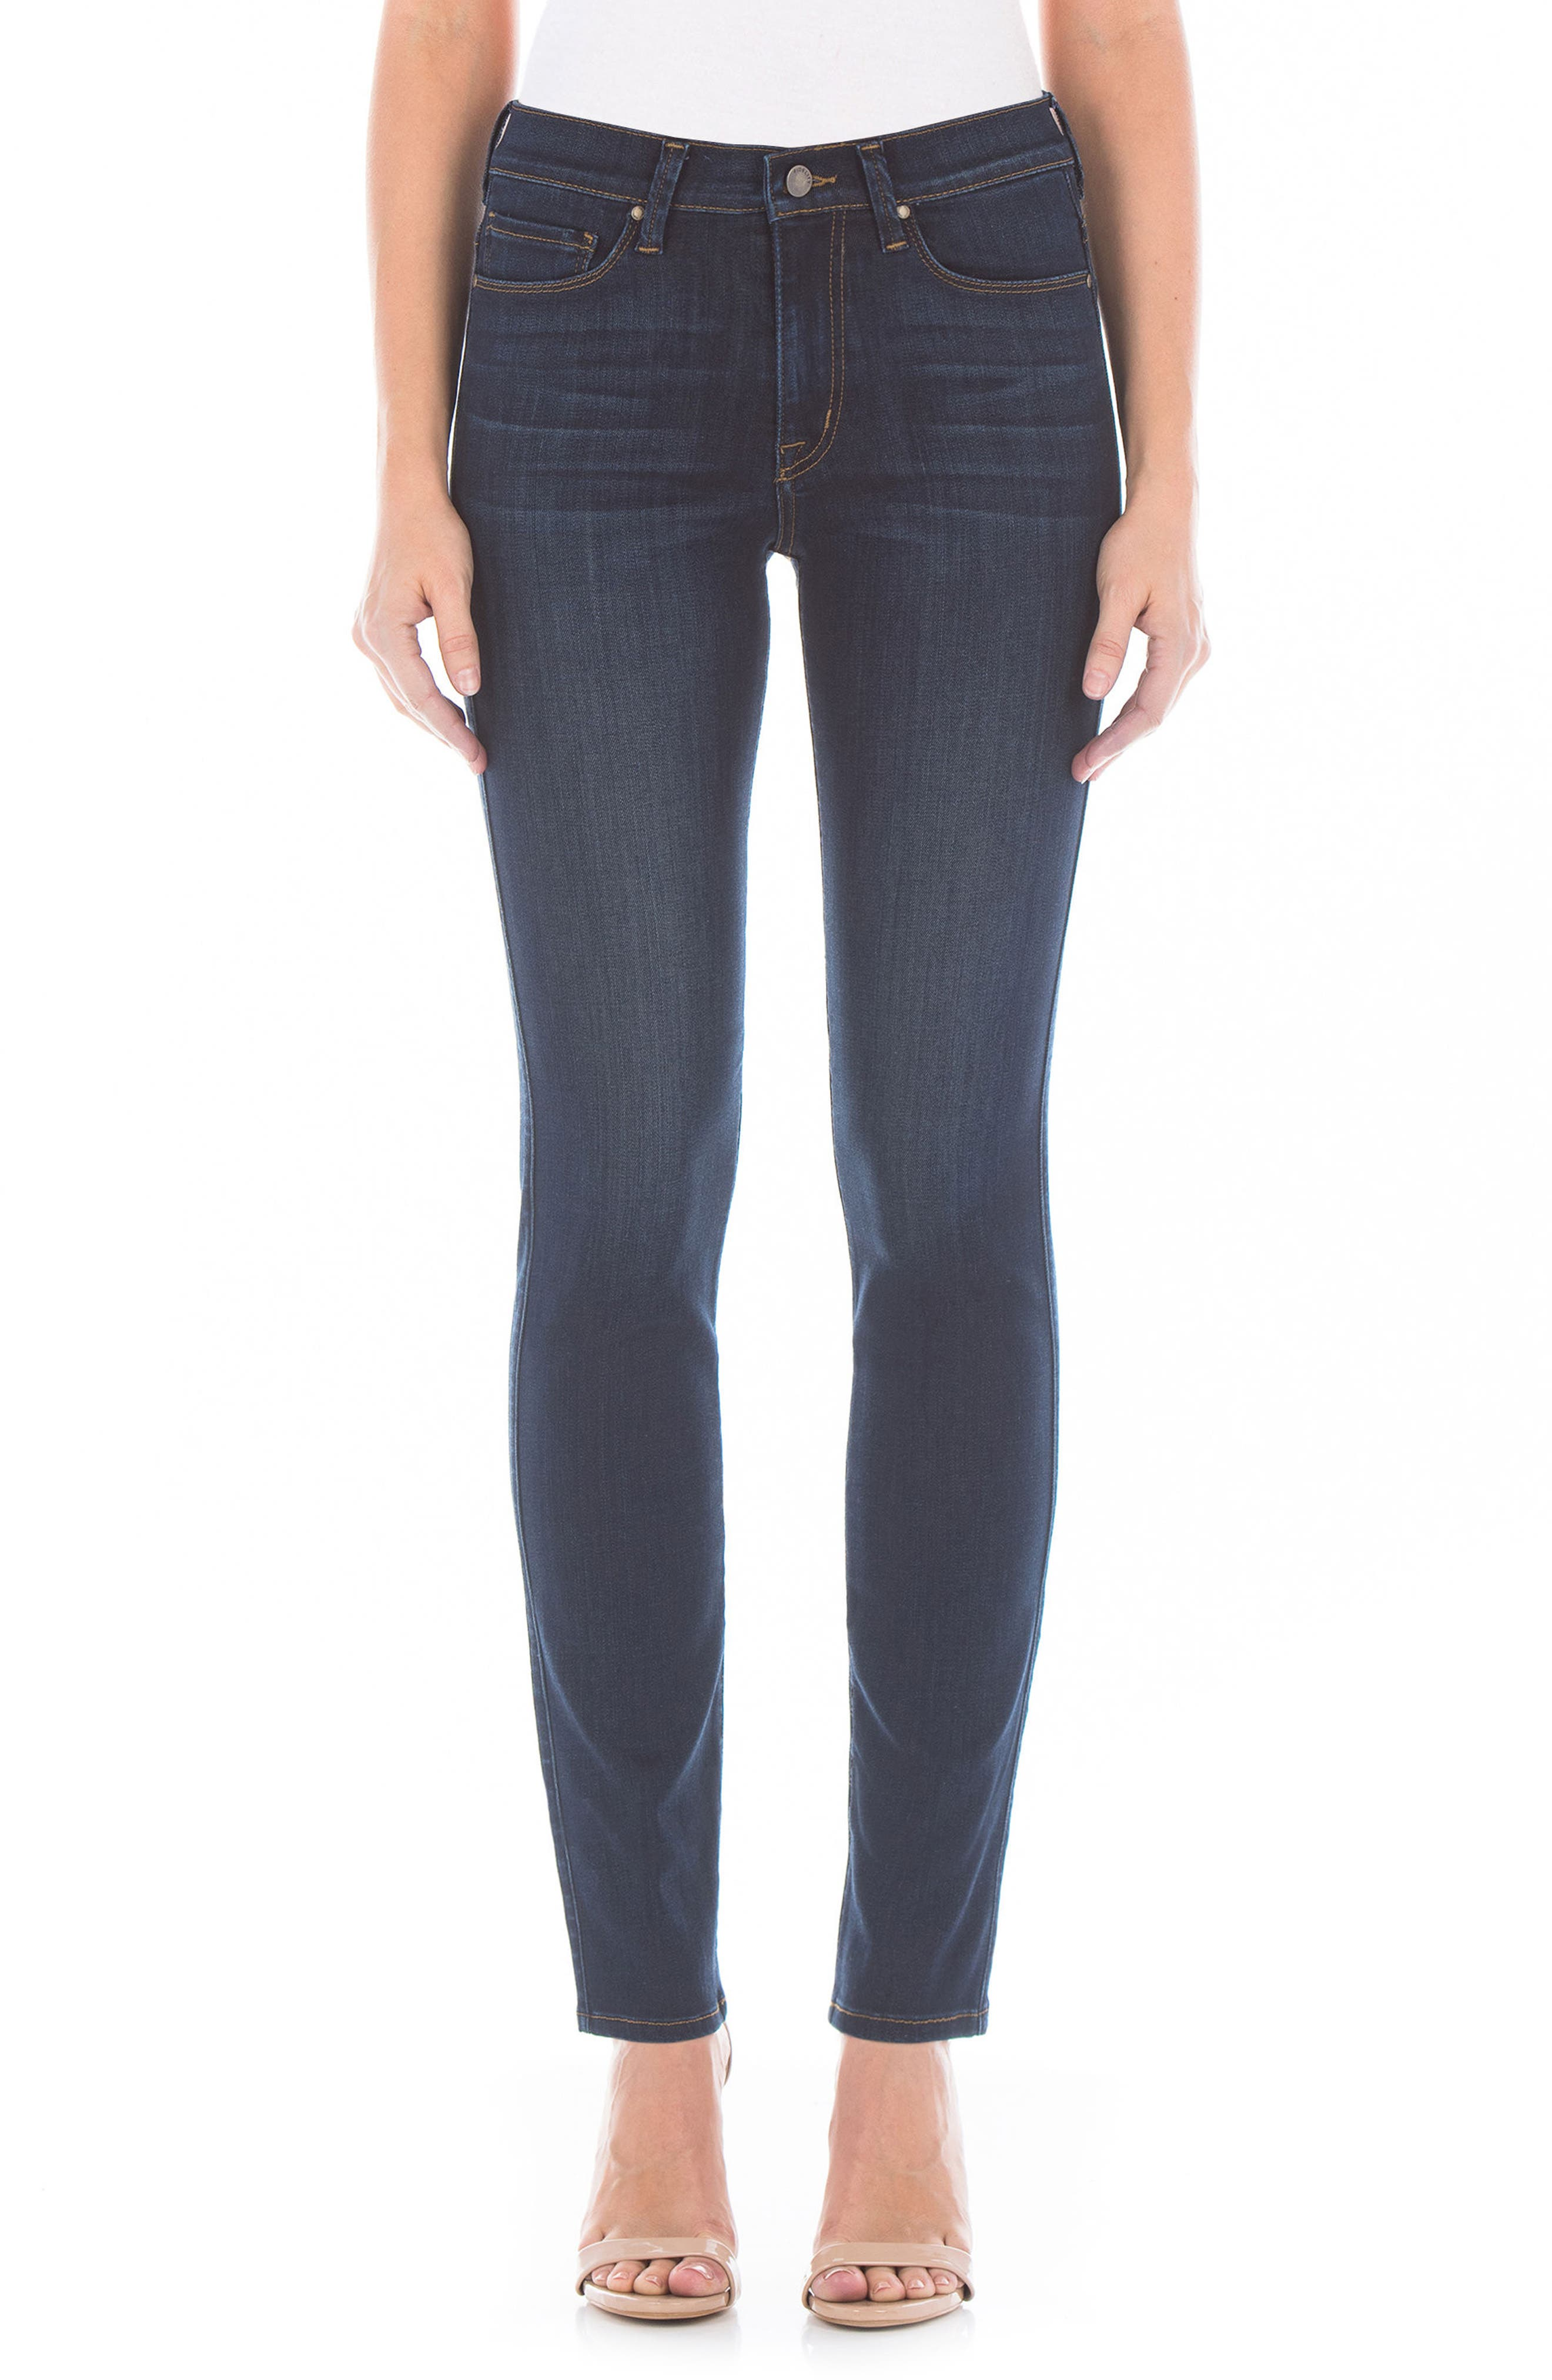 Cher High Waist Slim Jeans,                         Main,                         color, Bali Blue